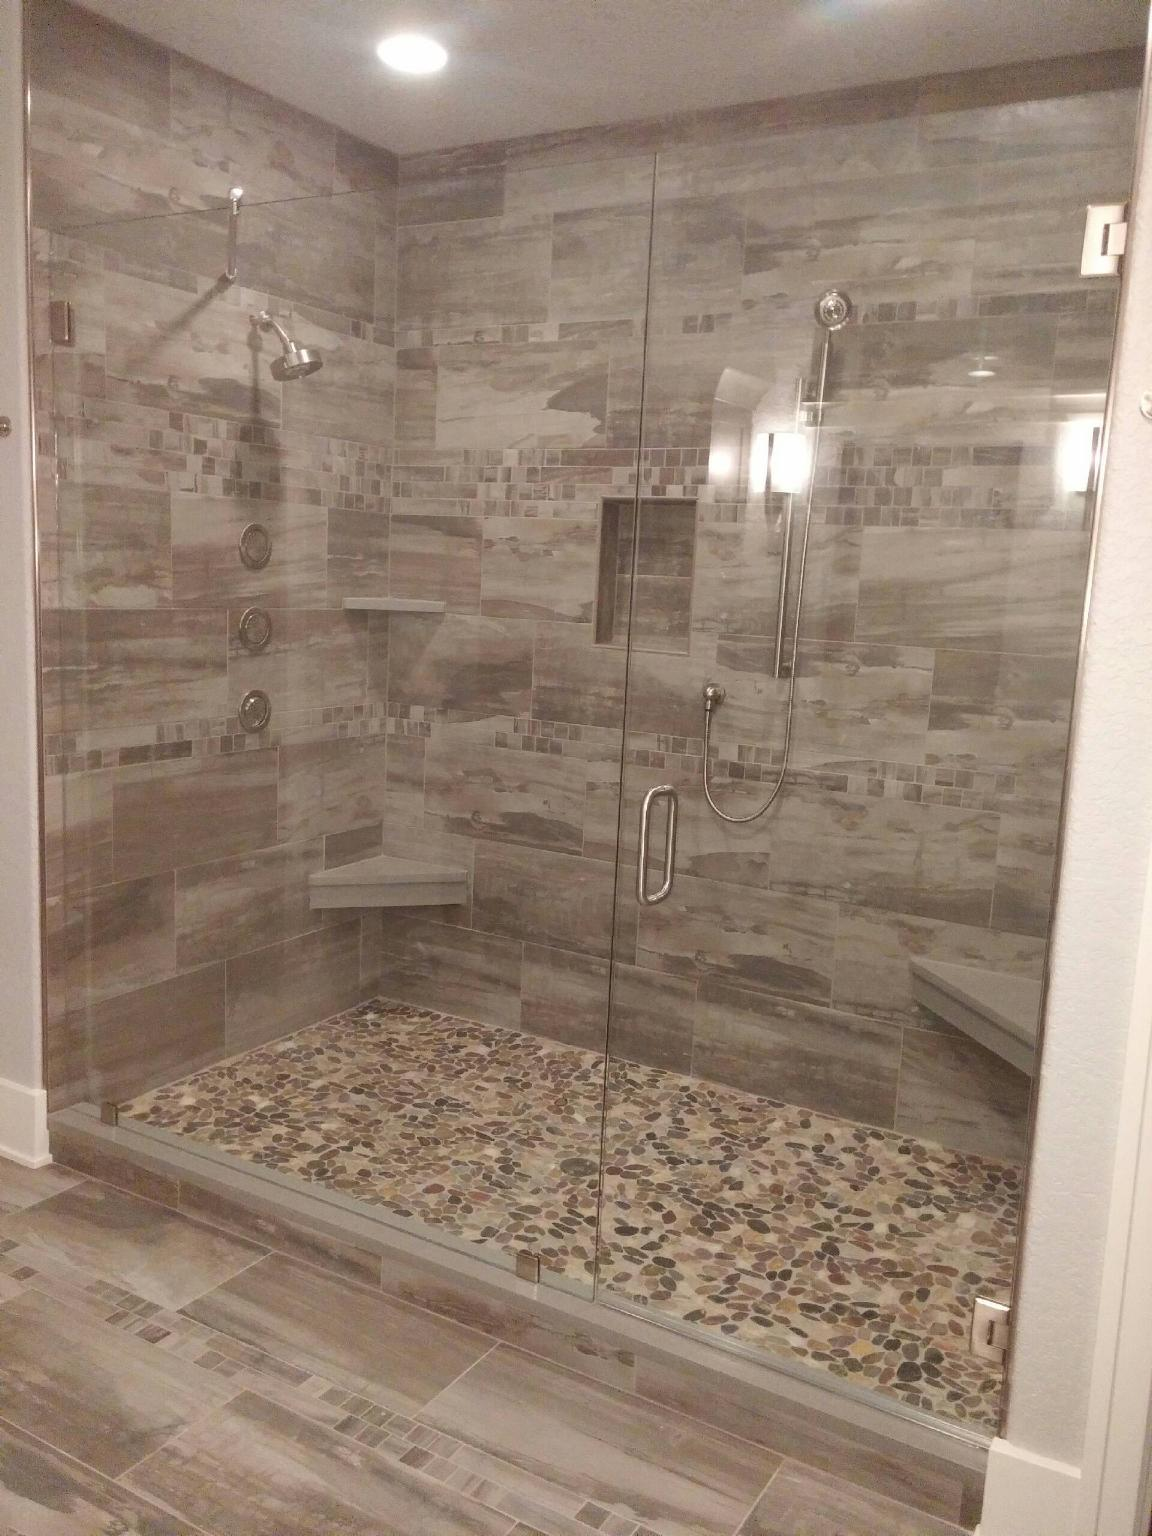 Shower Door Repair Altoona Sassman Glass And Mirror - Bathroom shower door repair